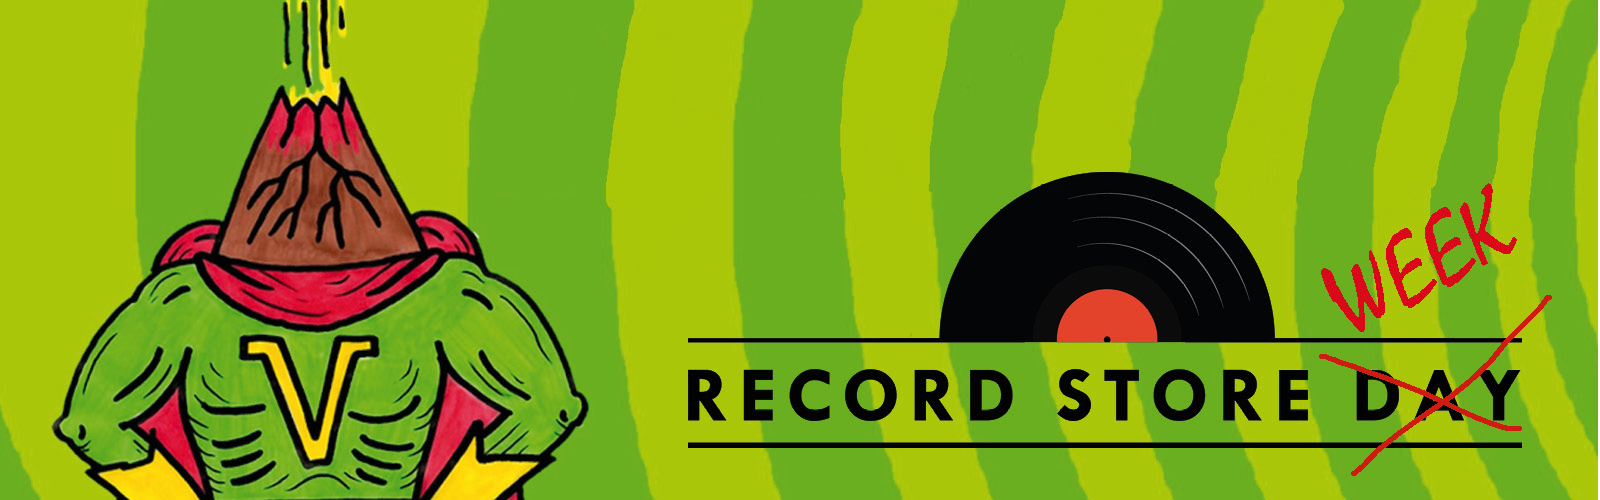 Record Store Day 2018 El Volcán